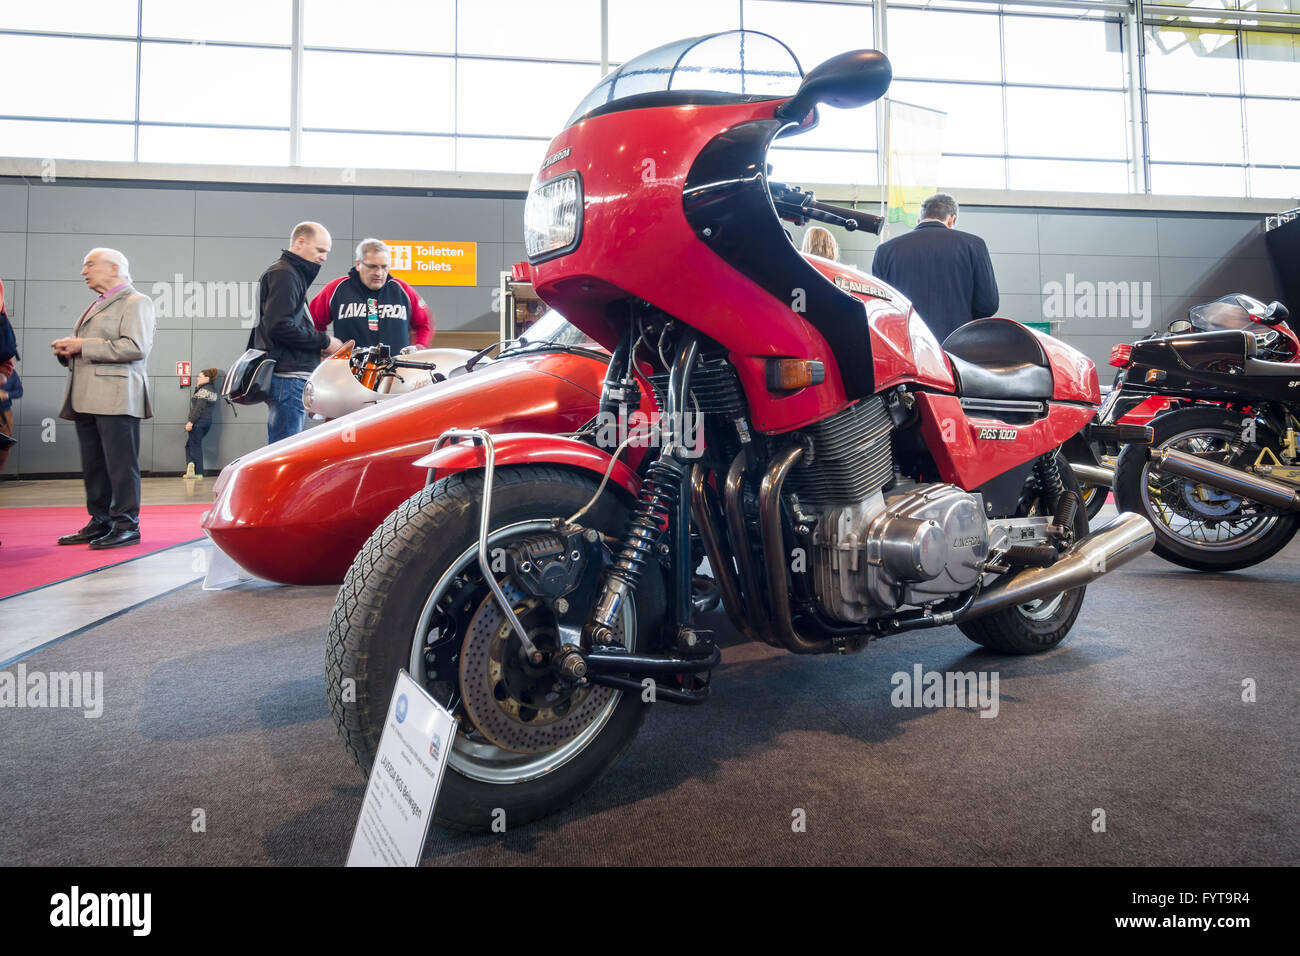 Motorcycle Laverda RGS, with a sidecar Carell-Shoo, 1983. - Stock Image